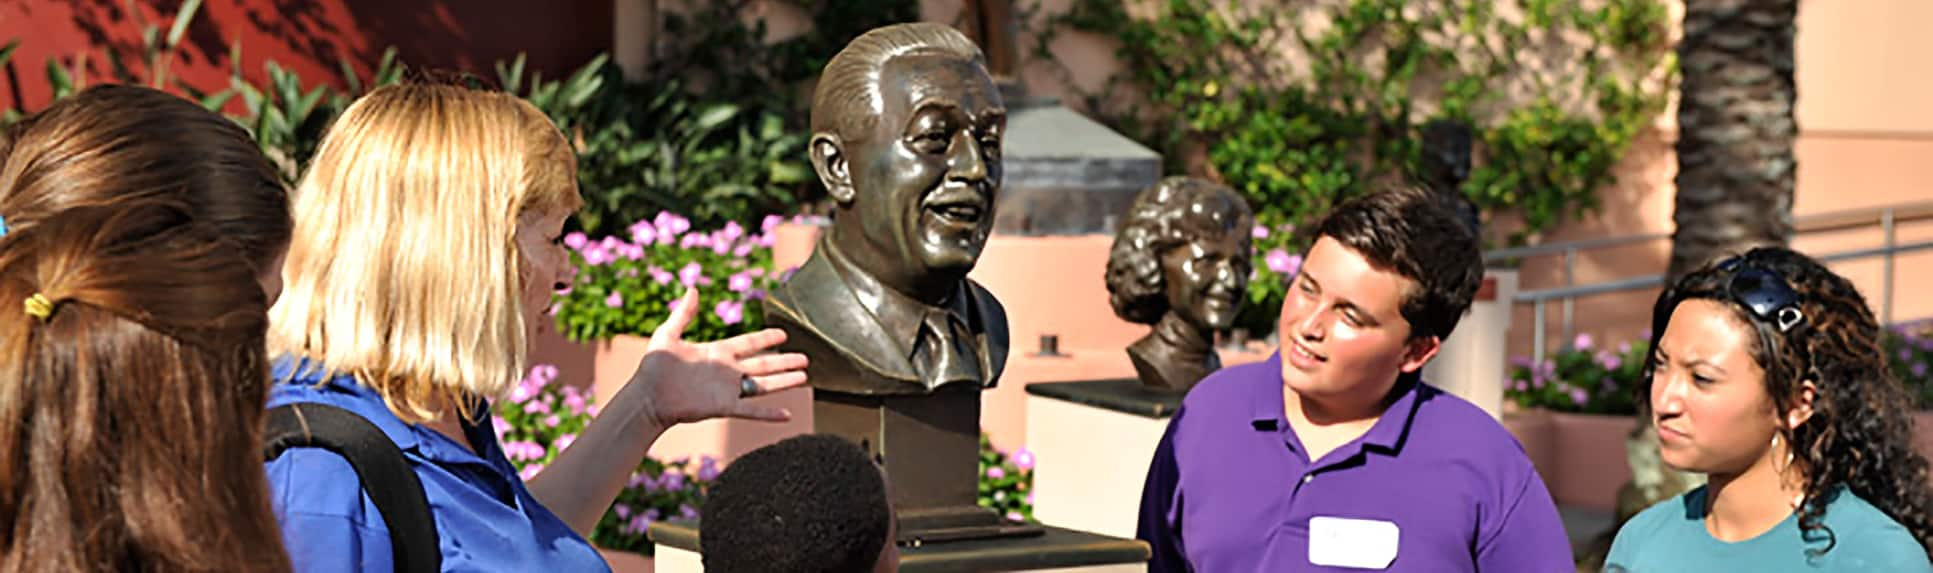 Children watching a Cast Member gesturing towards a bust of Walt Disney